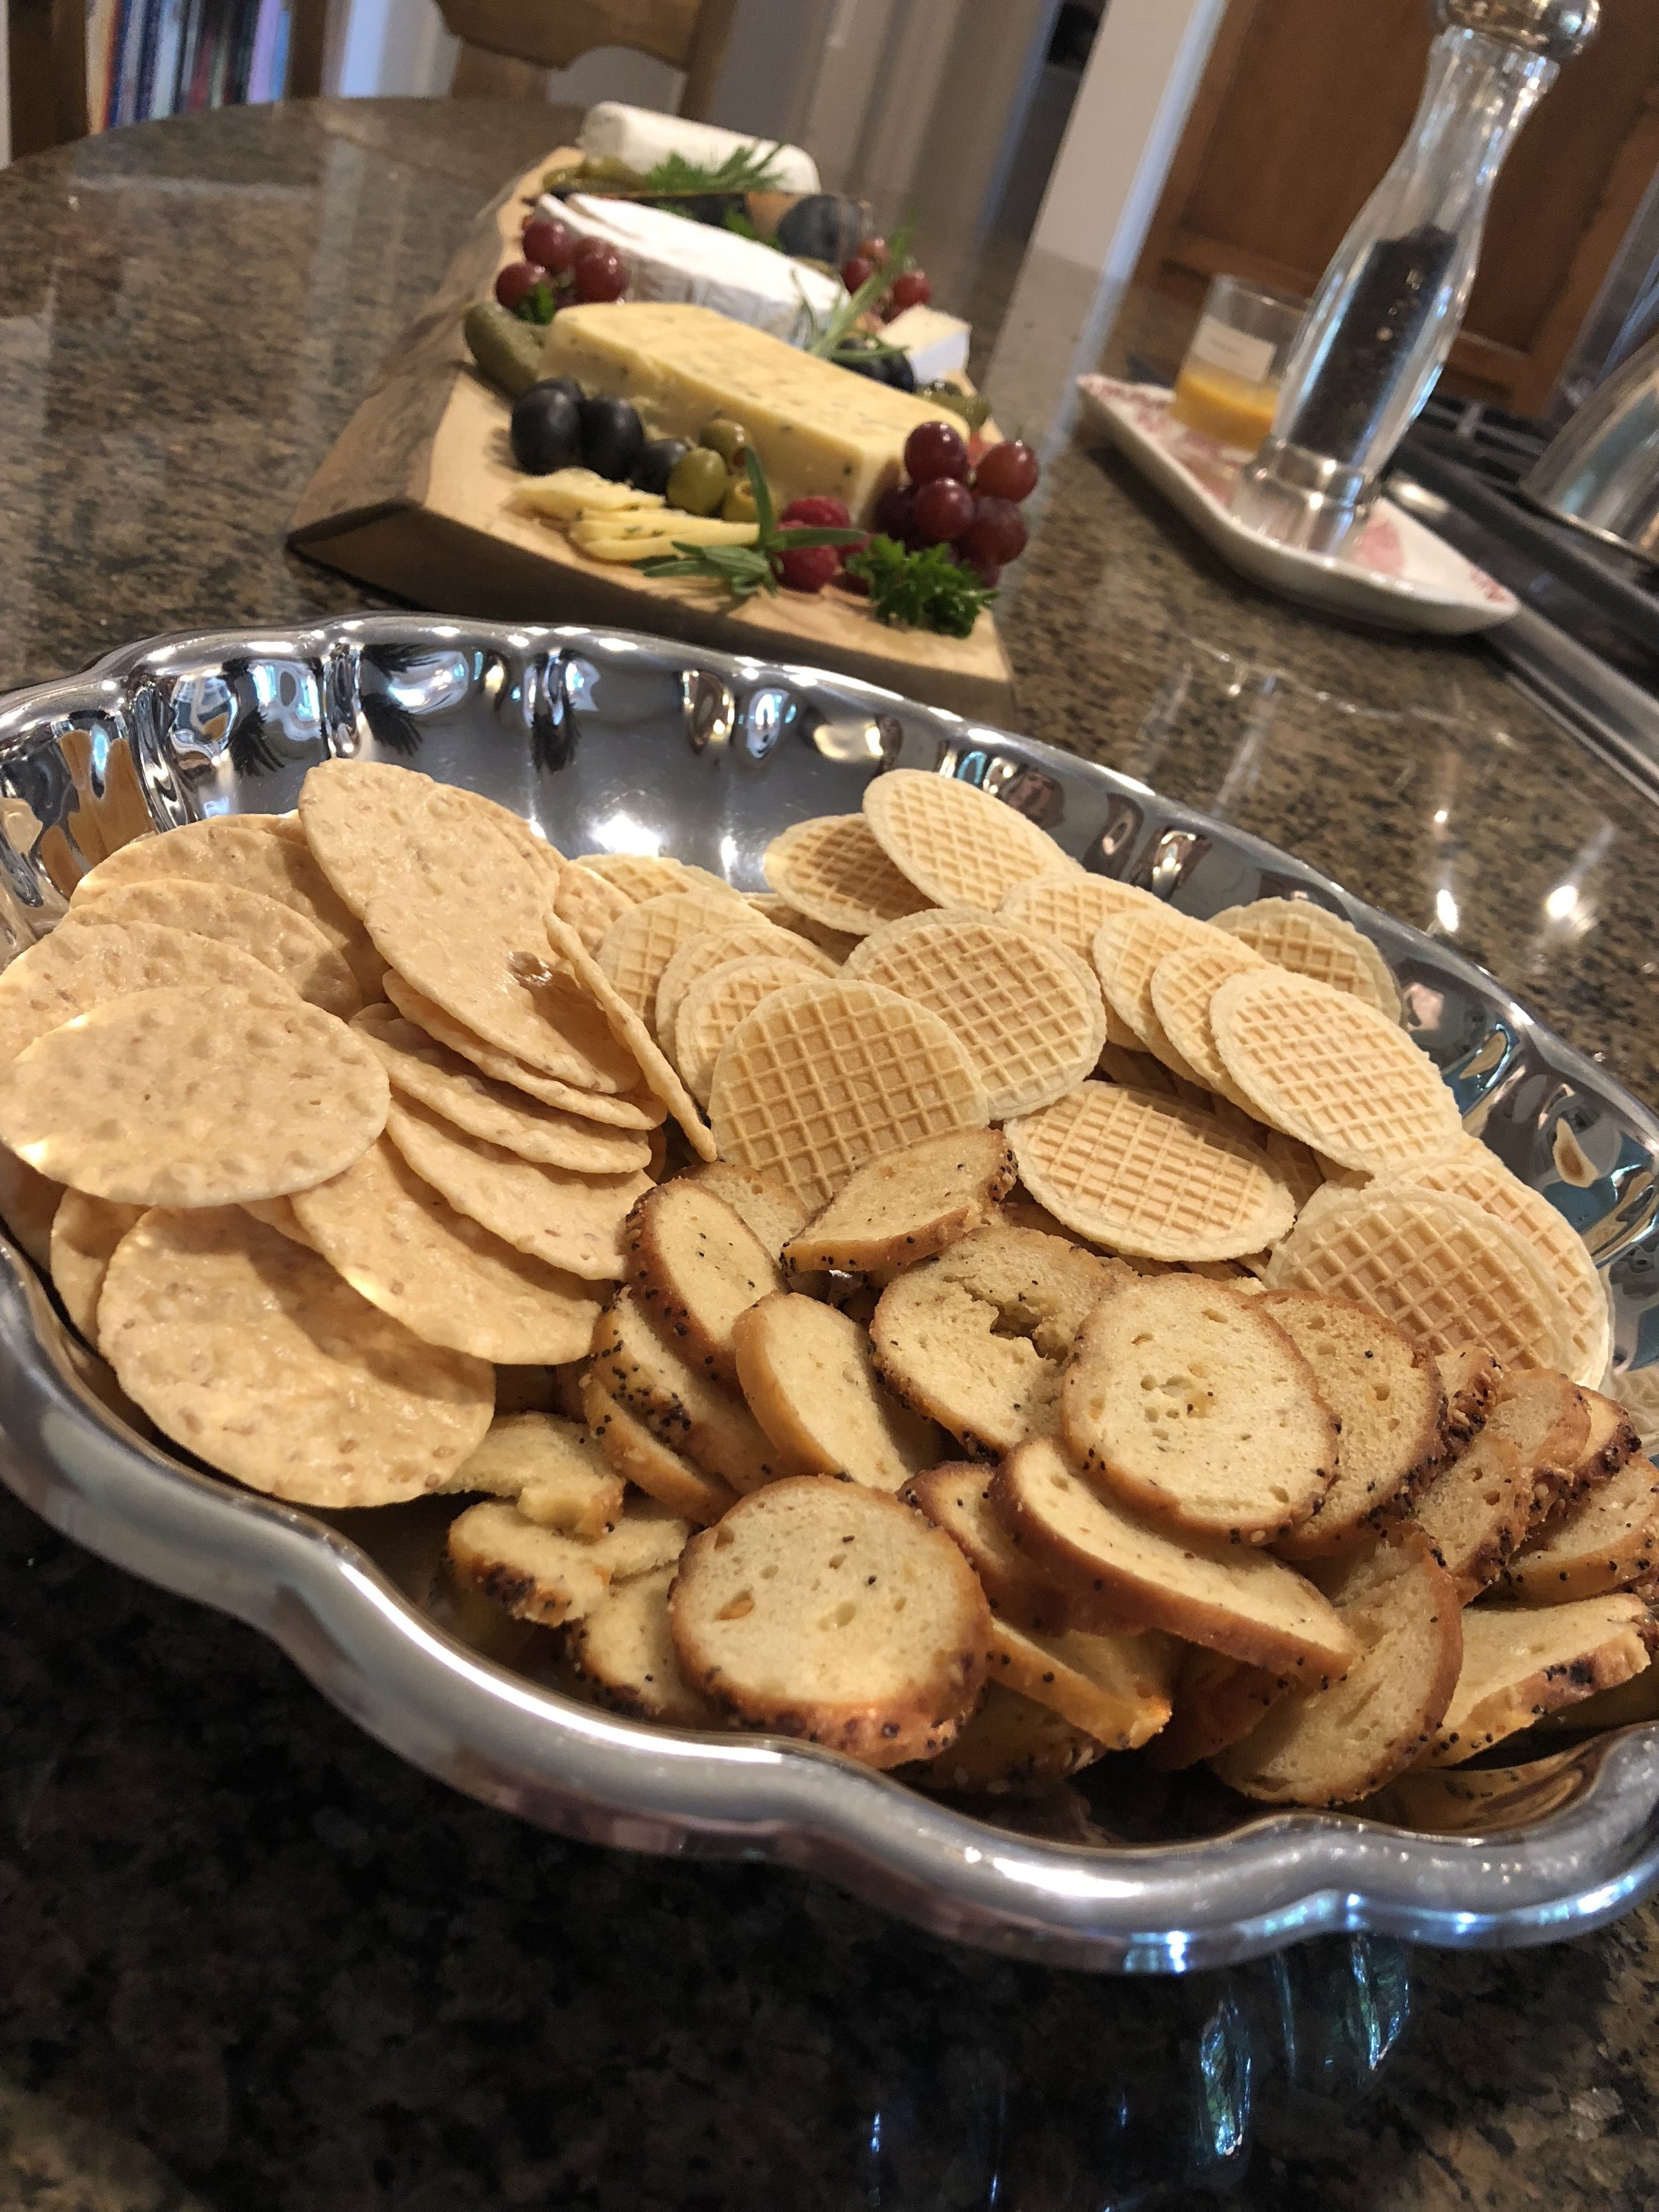 I put a variety of crackers in a separate basket.